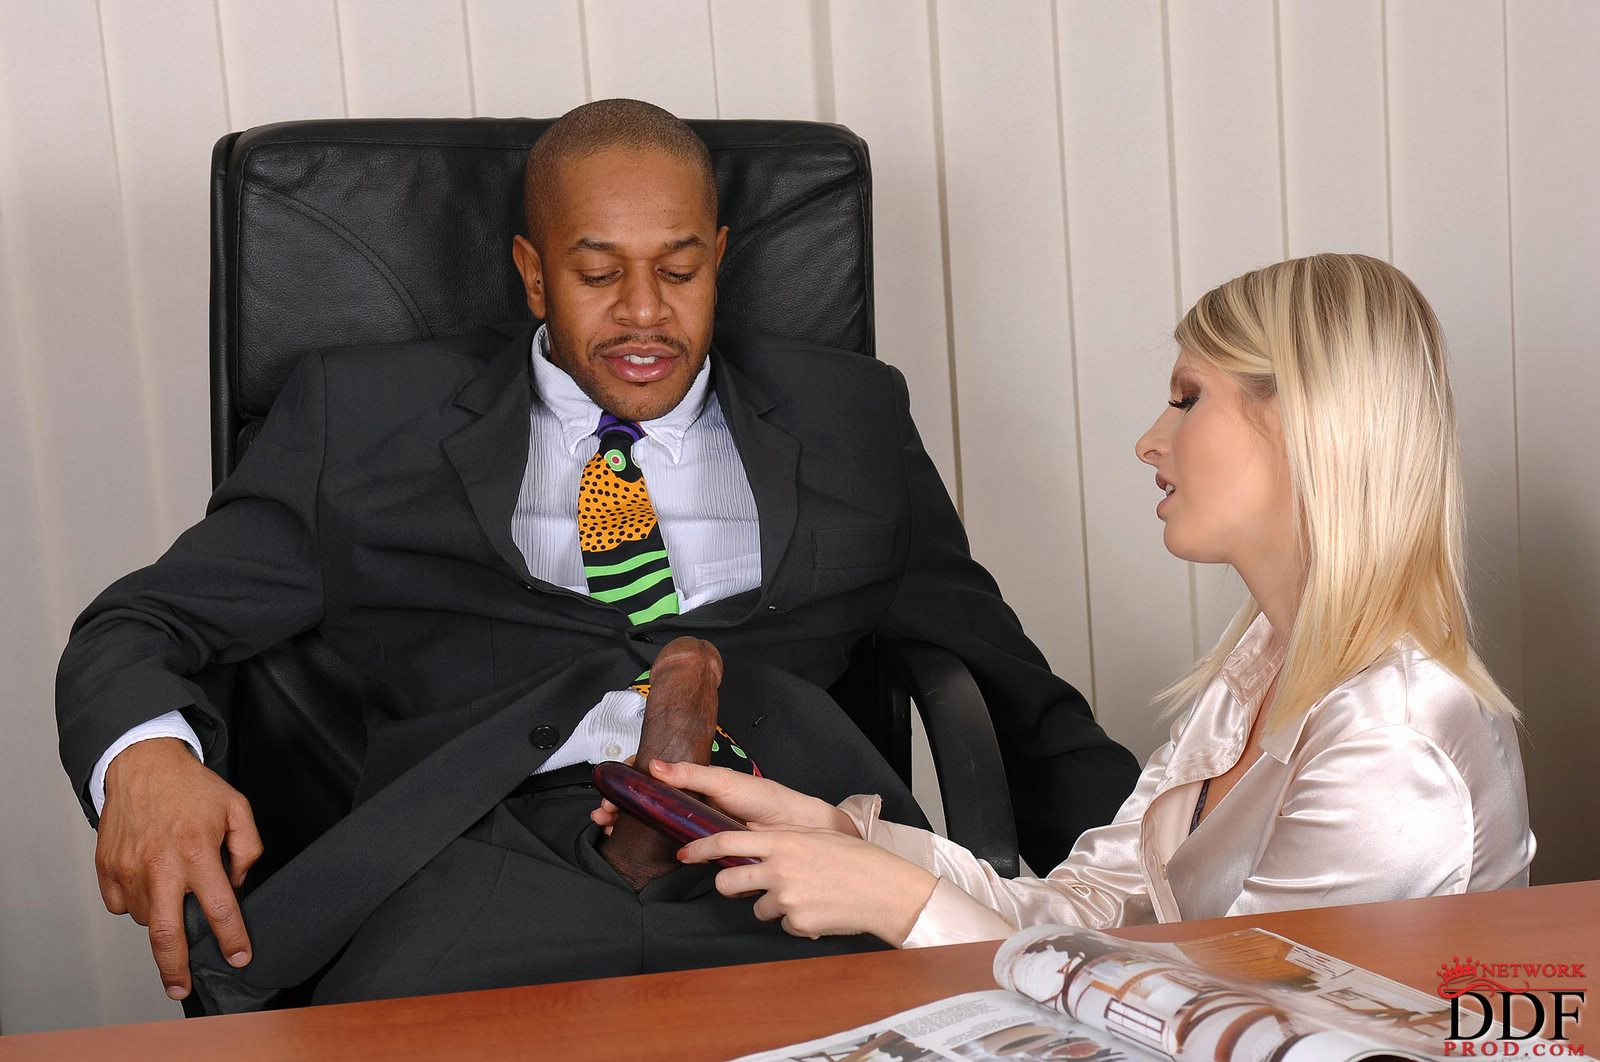 Boss Fucks Secretary Pov